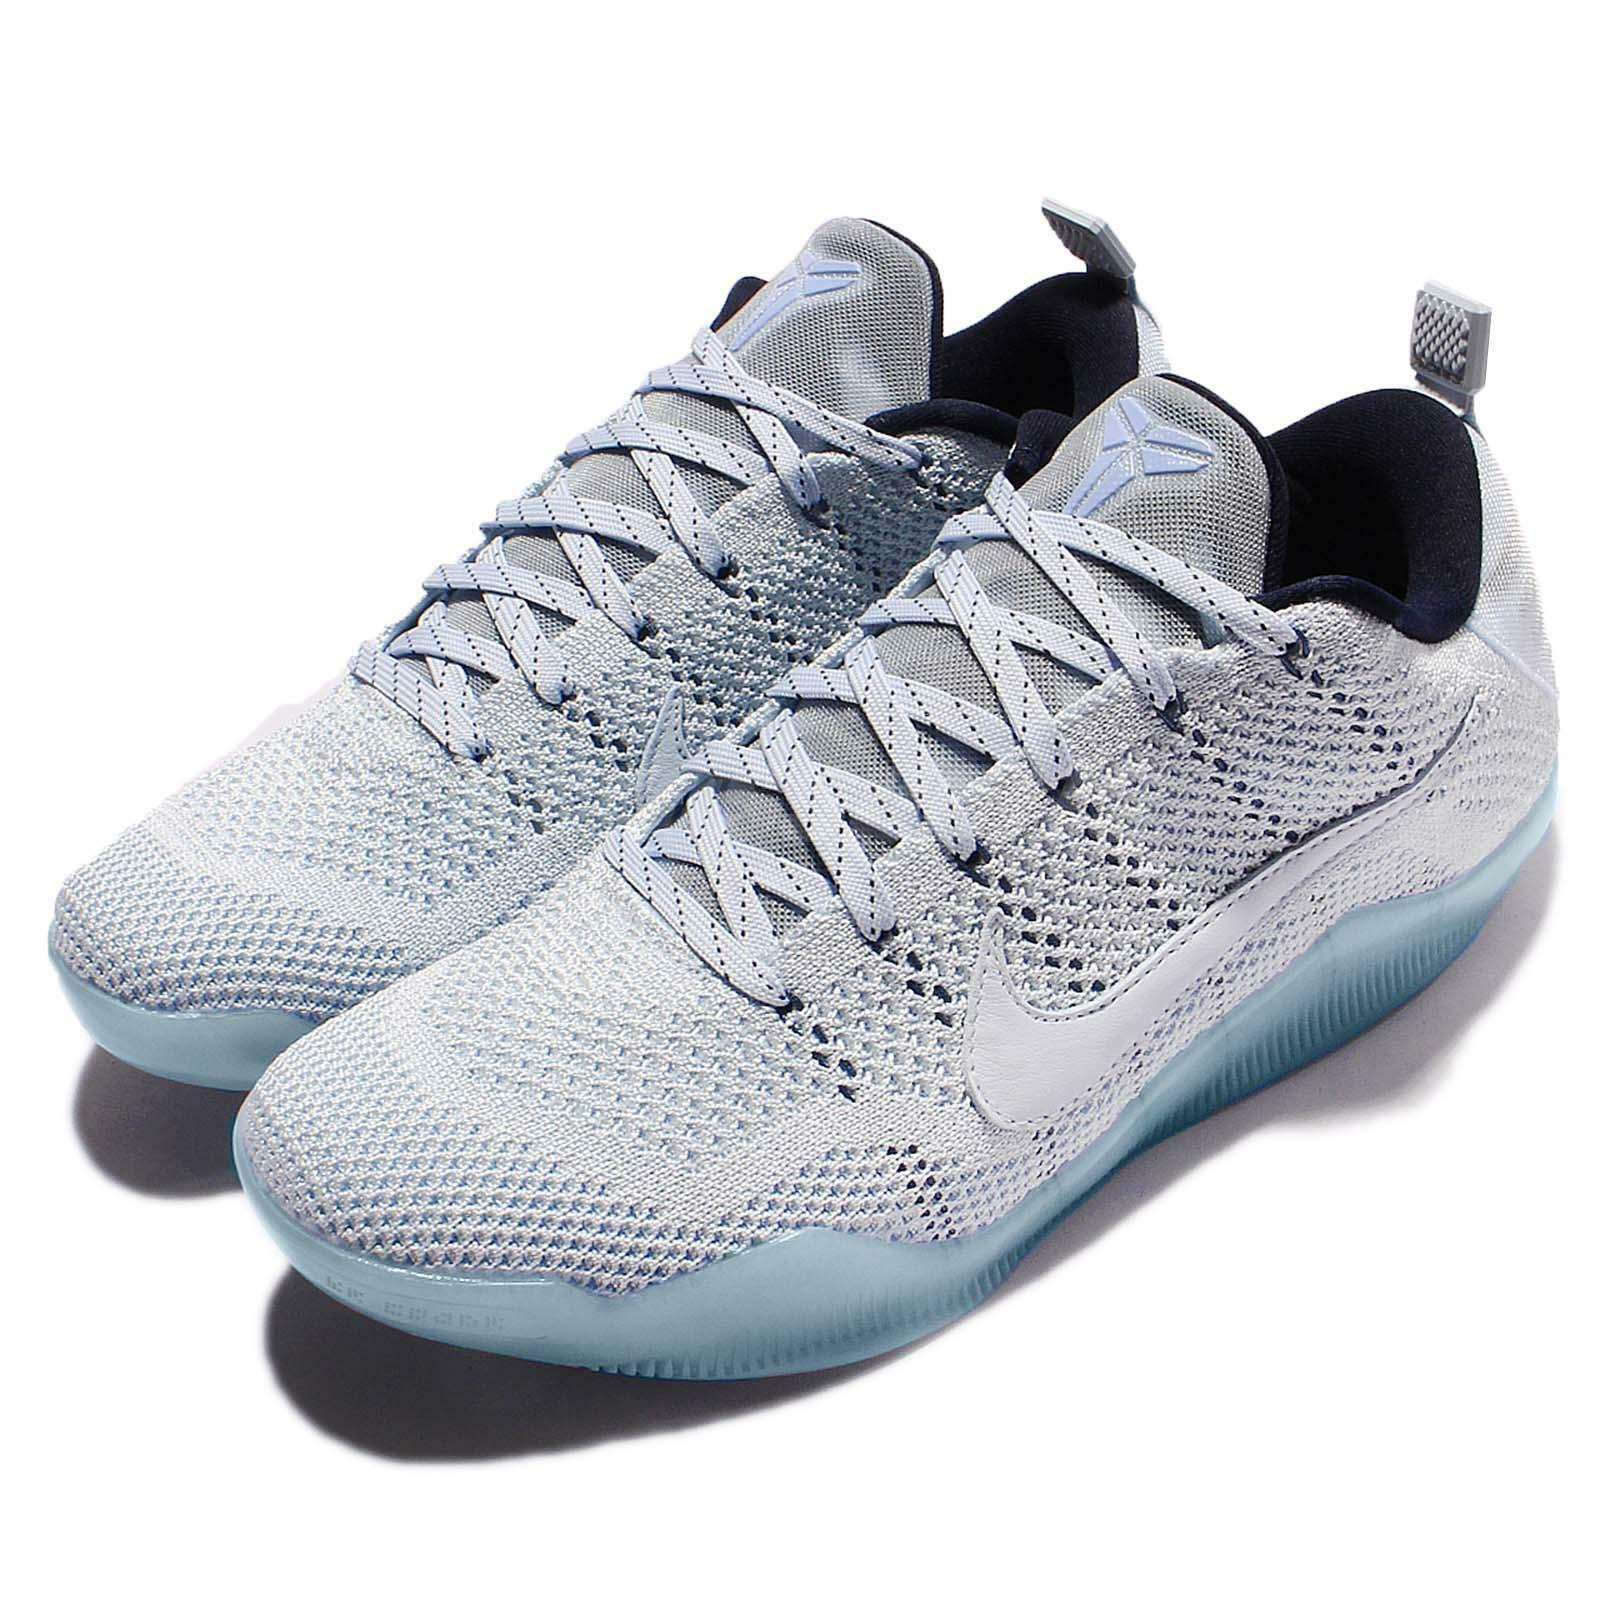 info for 0aa1a 53054 85%OFF Nike Kobe XI Elite Low 4KB 11 Bryant Pale Horse Men Basketball Shoes